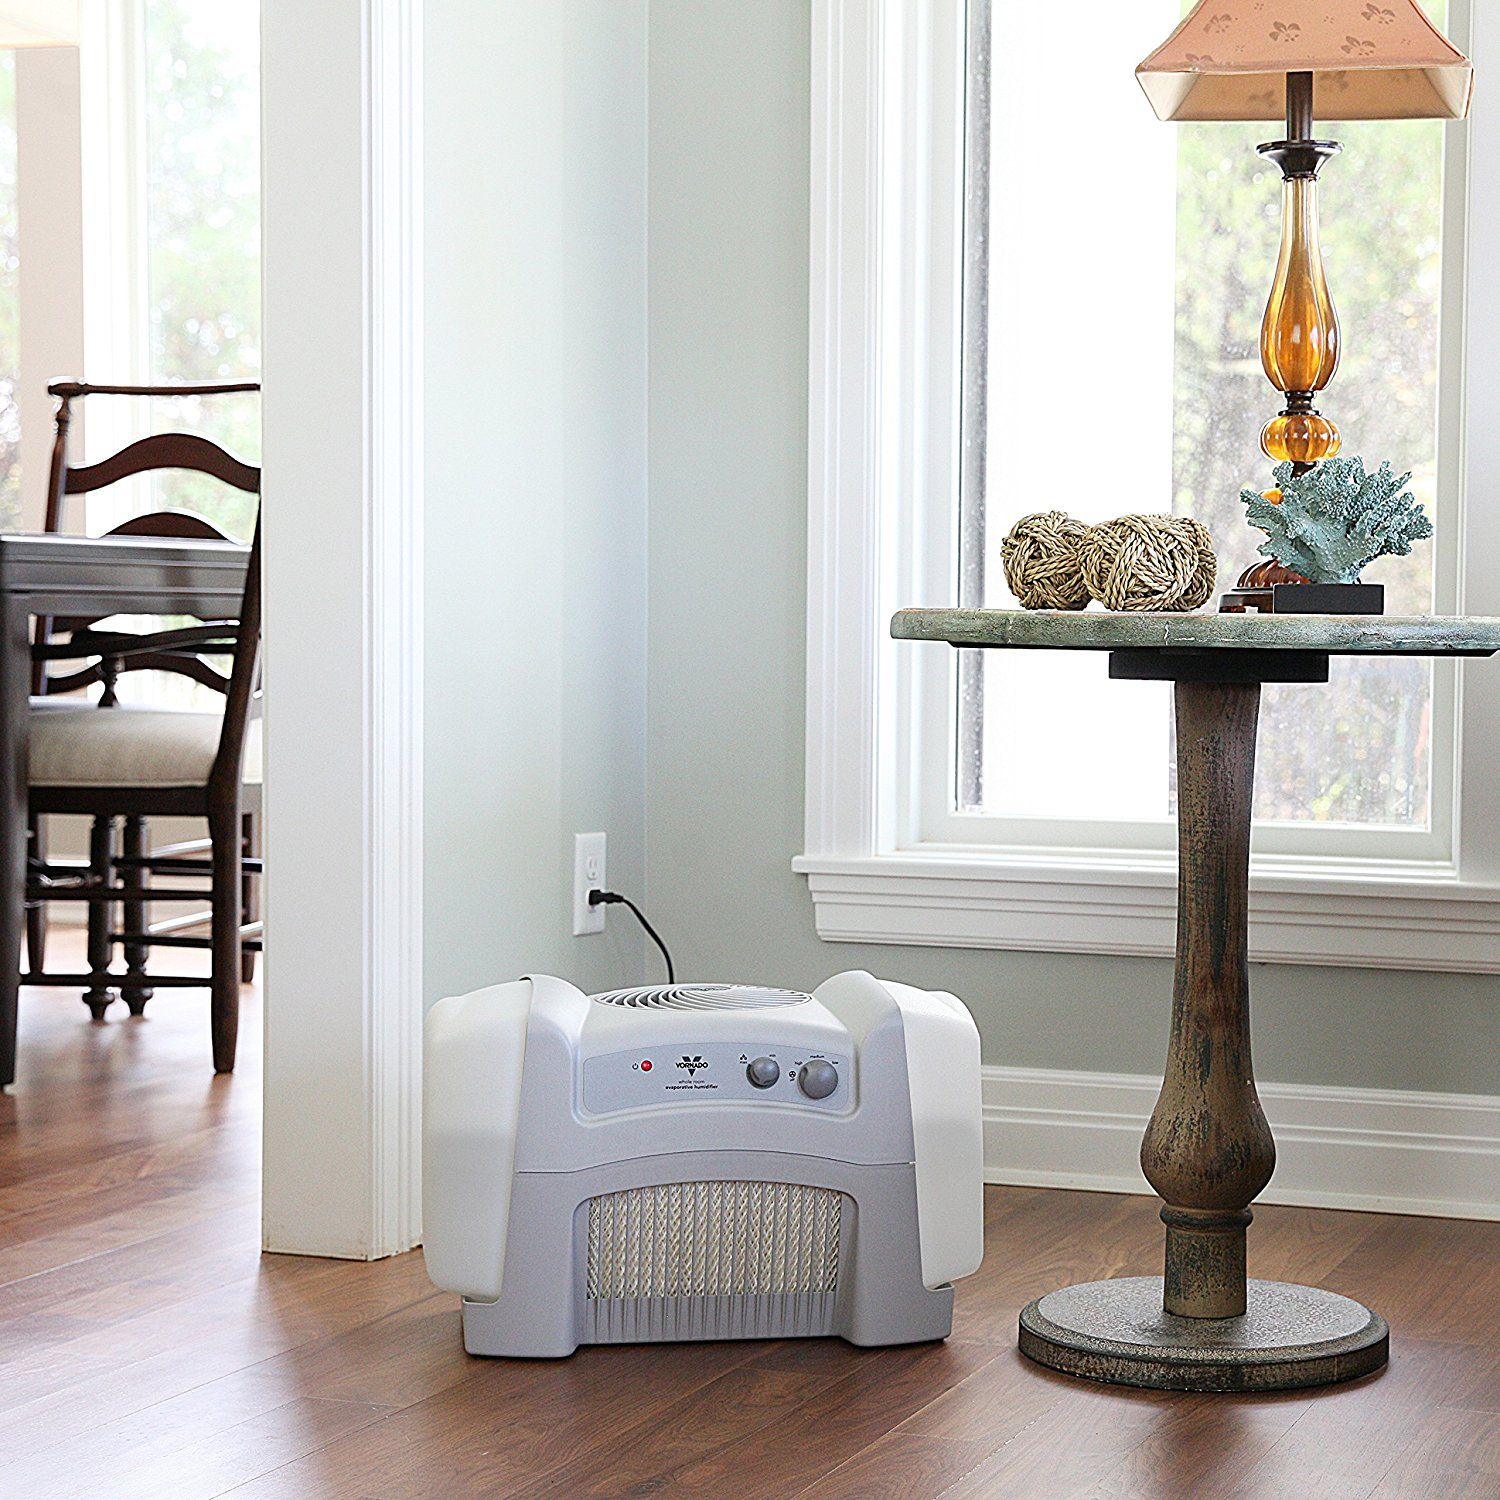 Best Whole House Humidifiers Reviews 2018 Top Models